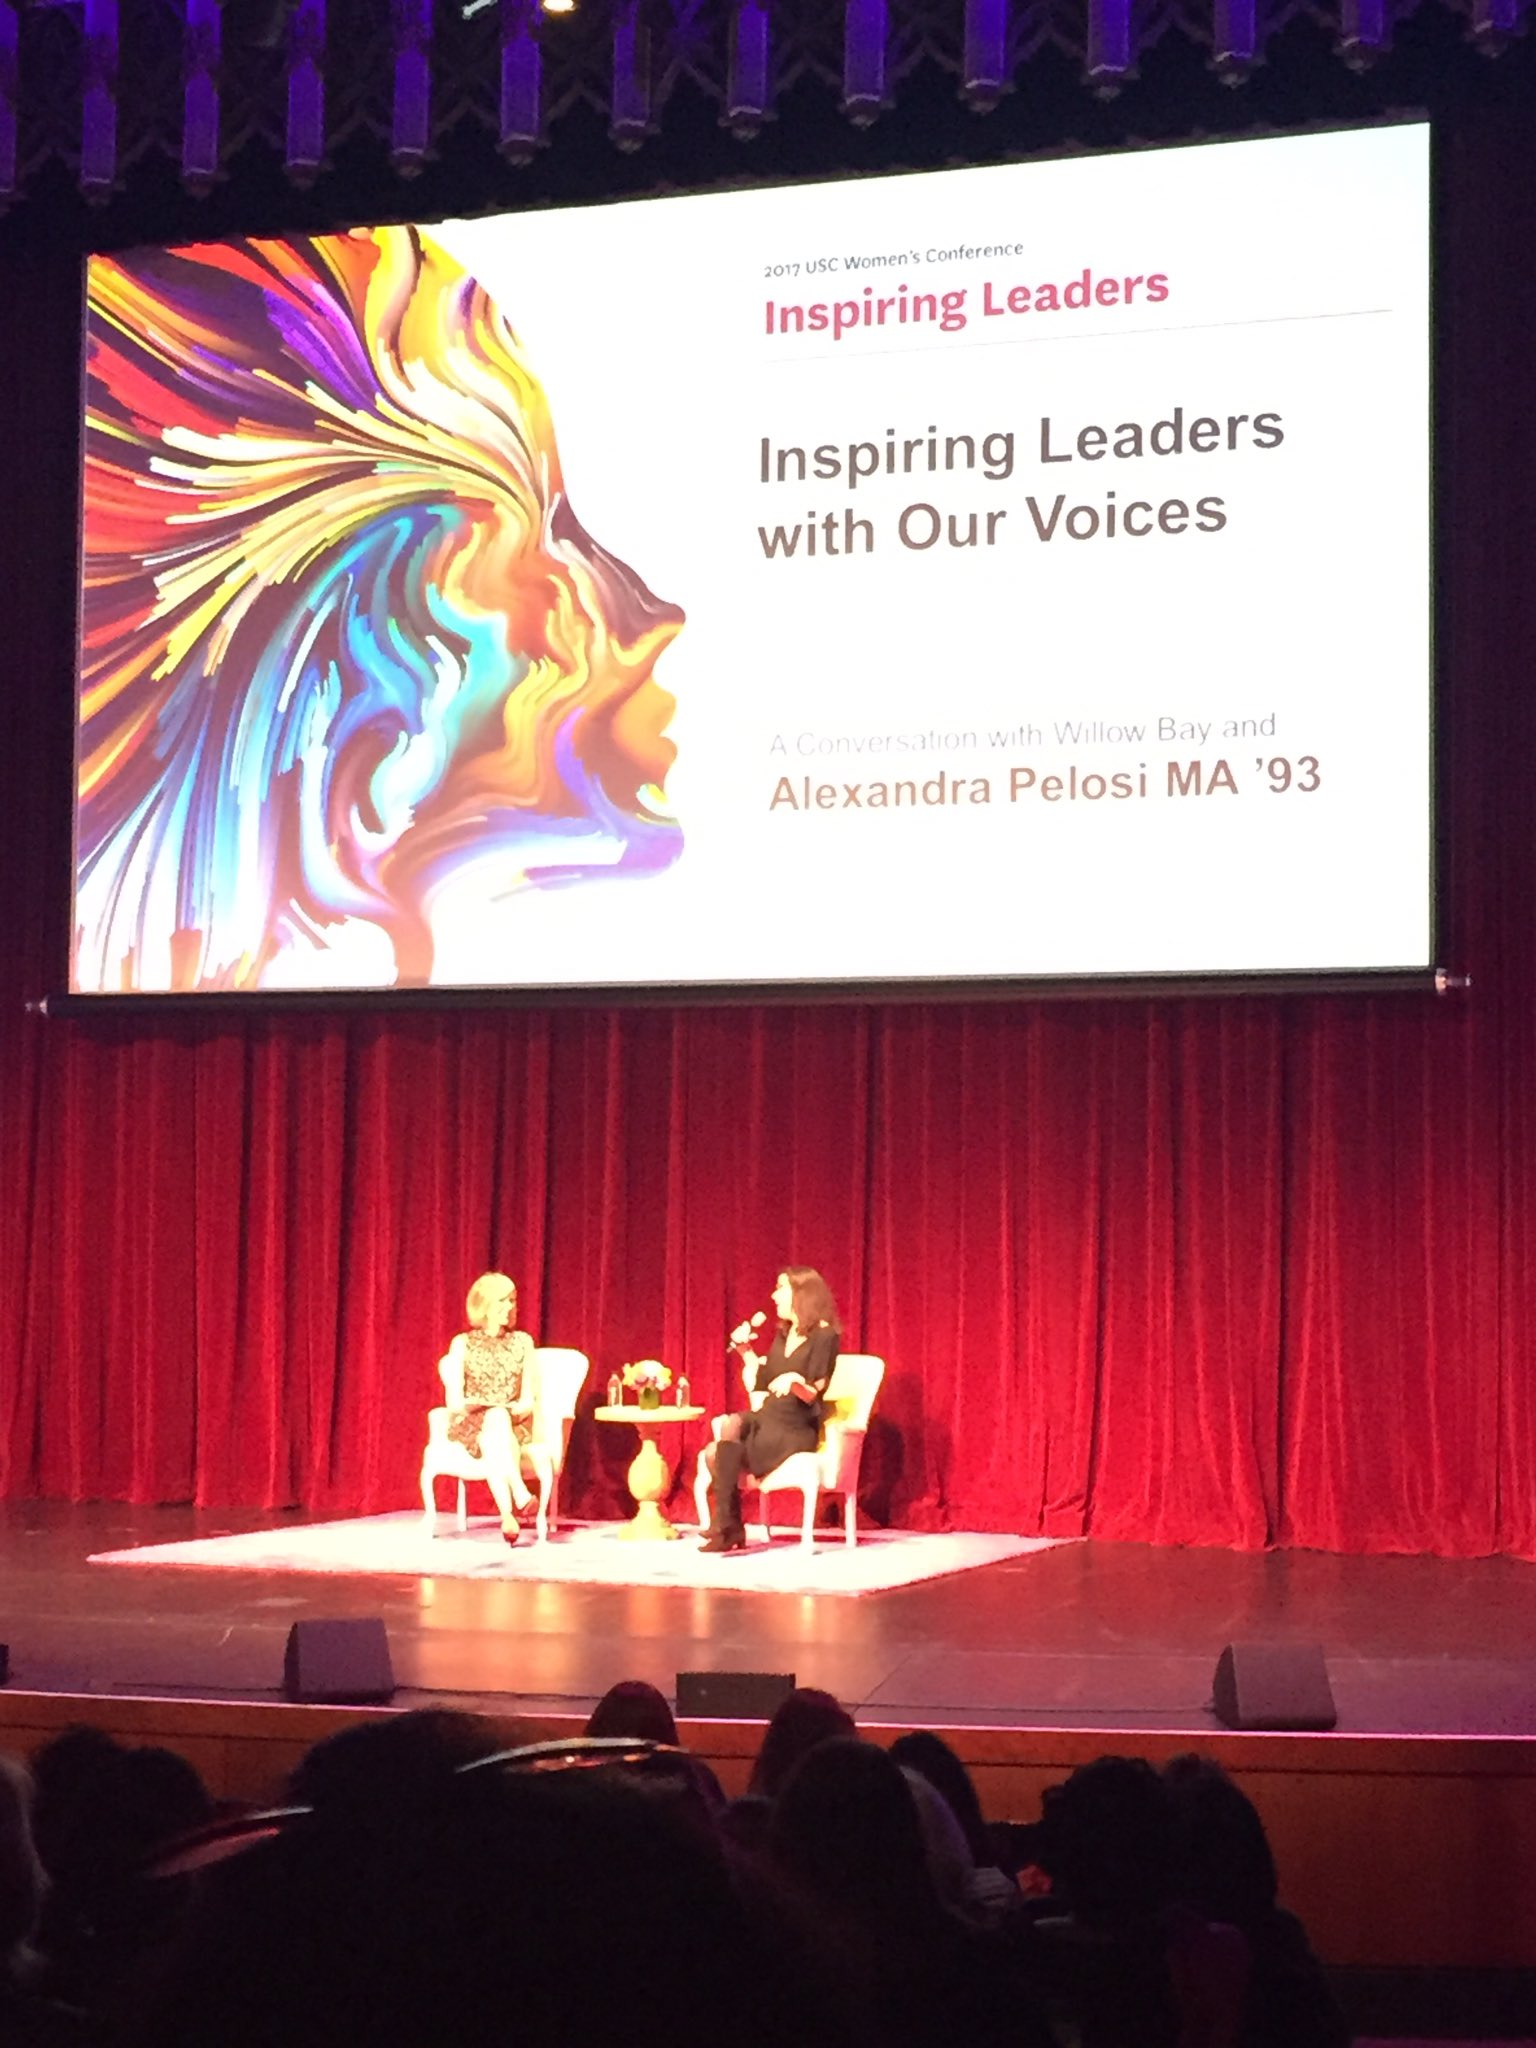 Wonderful day at the @USCAlumni Women's Conference #USCWC with the new 1st female dean of @USCAnnenberg @Willow_Bay! https://t.co/qBE7jylcW6